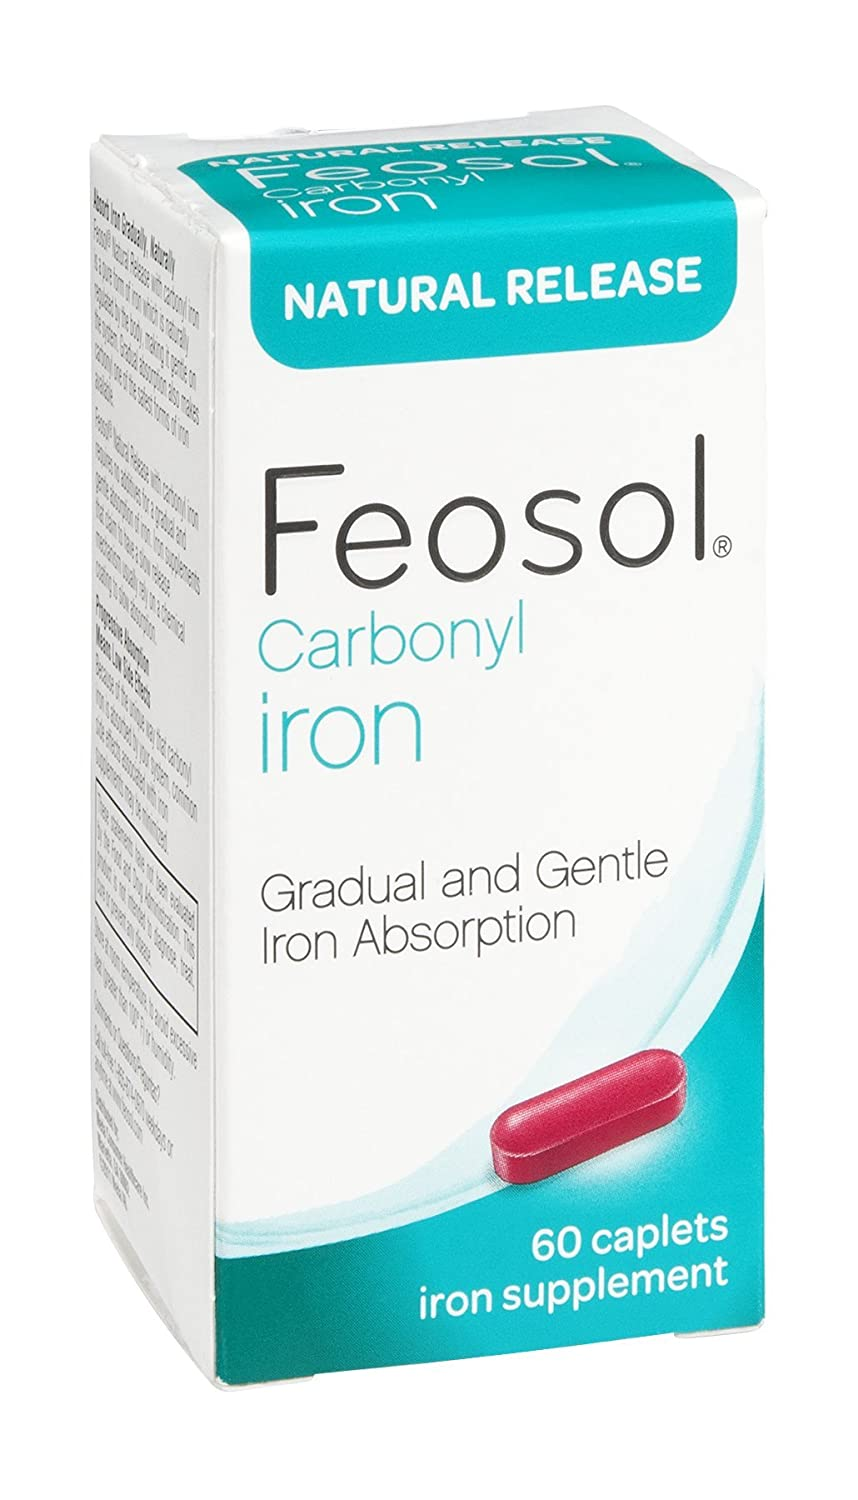 Carbonyl Iron Reviews recommendations